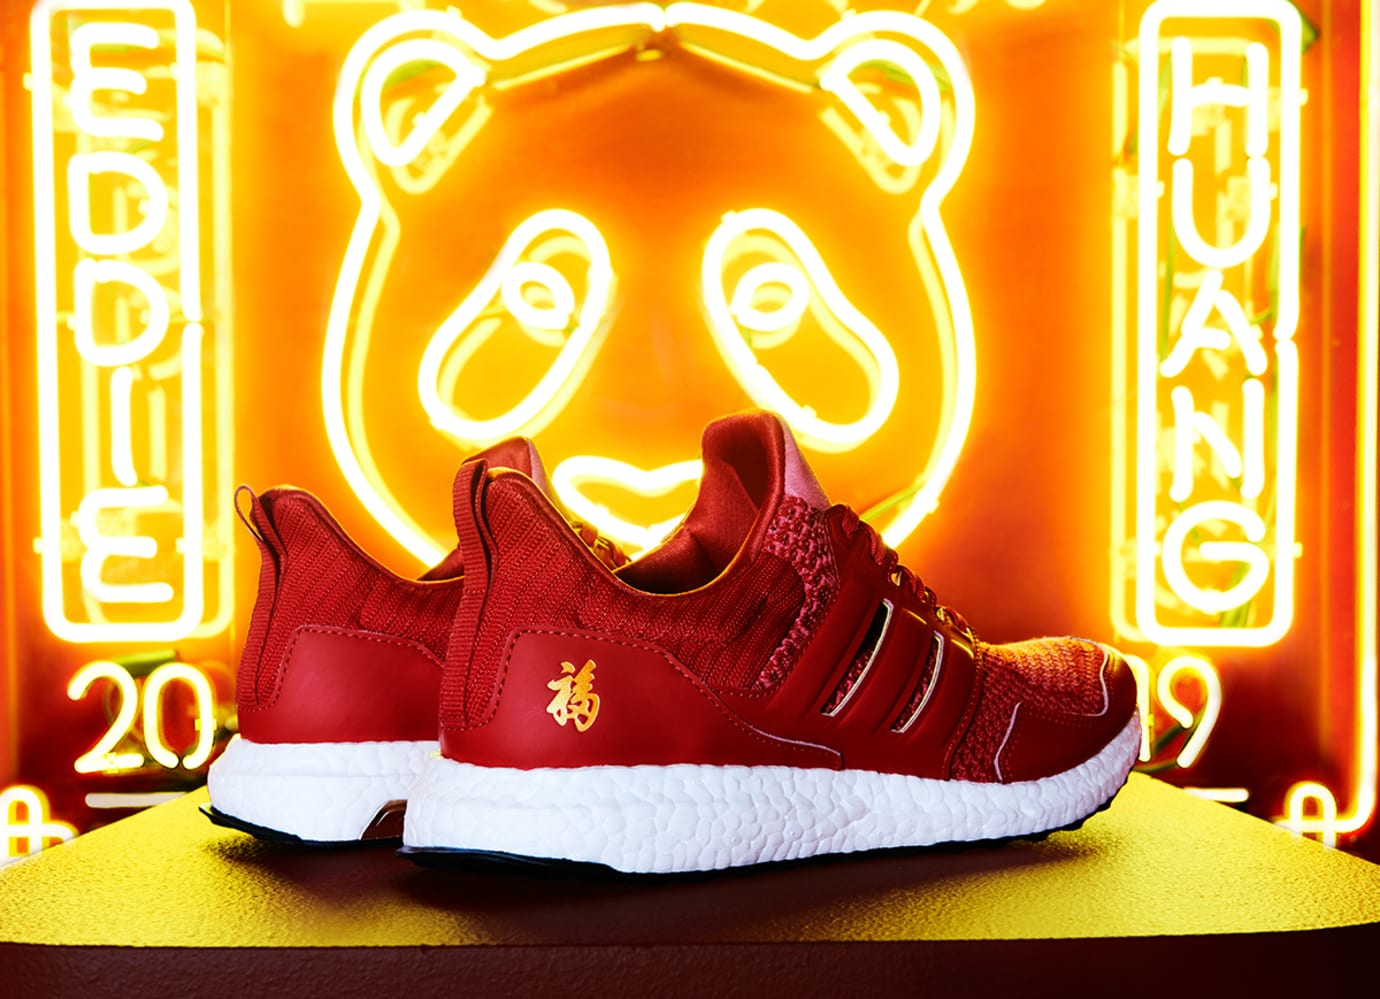 443ac1b64 Image via Adidas Eddie Huang x Adidas Ultra Boost  Chinese New Year  4